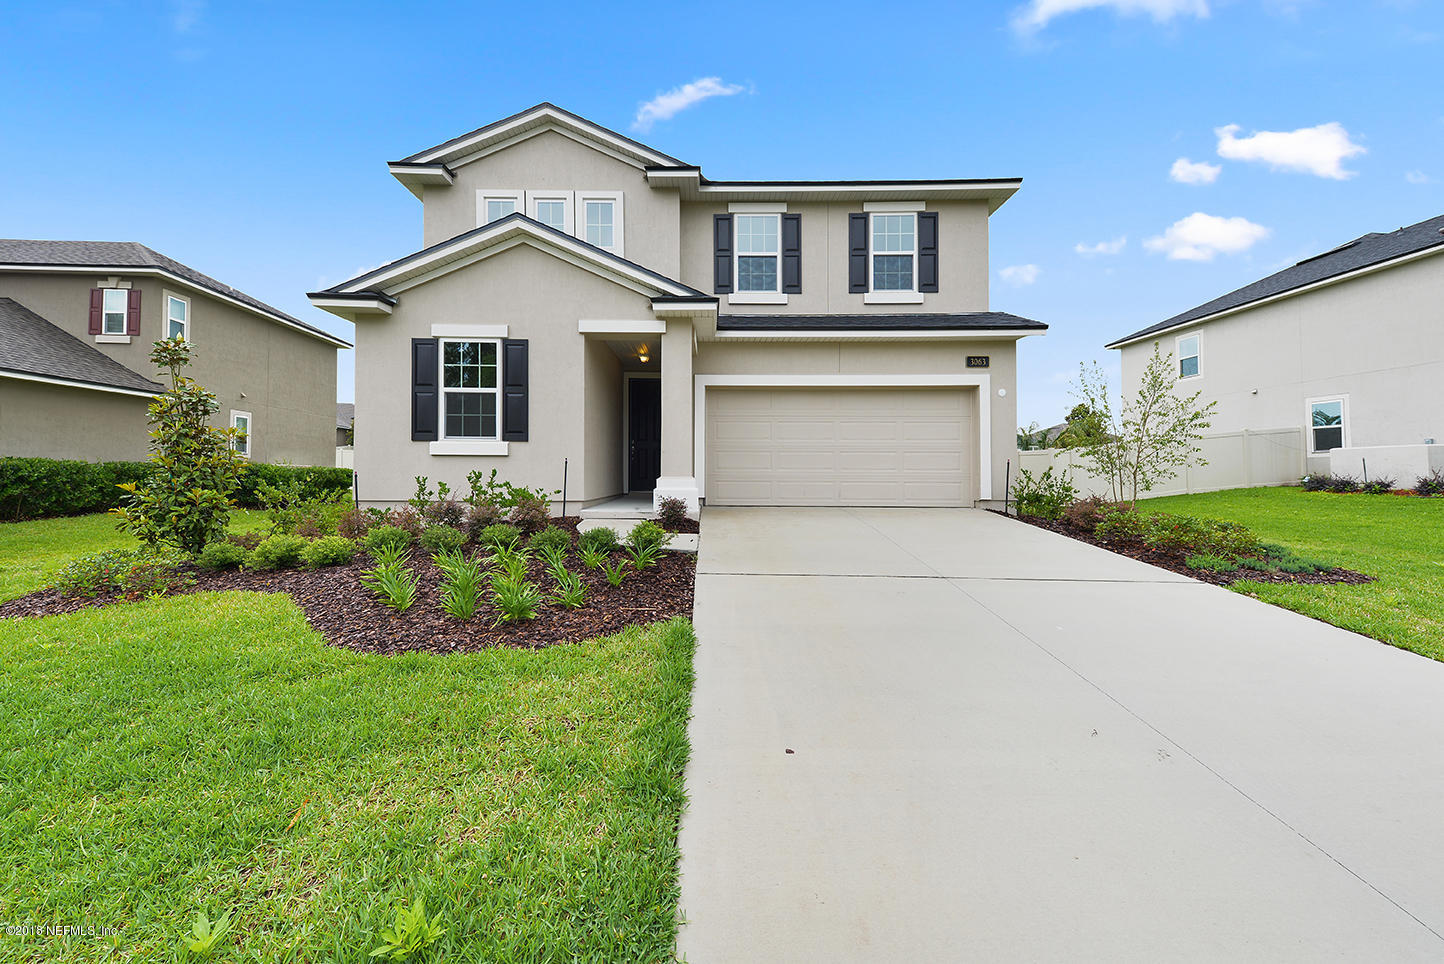 3063 PADDLE CREEK, GREEN COVE SPRINGS, FLORIDA 32043, 4 Bedrooms Bedrooms, ,3 BathroomsBathrooms,Residential - single family,For sale,PADDLE CREEK,956947